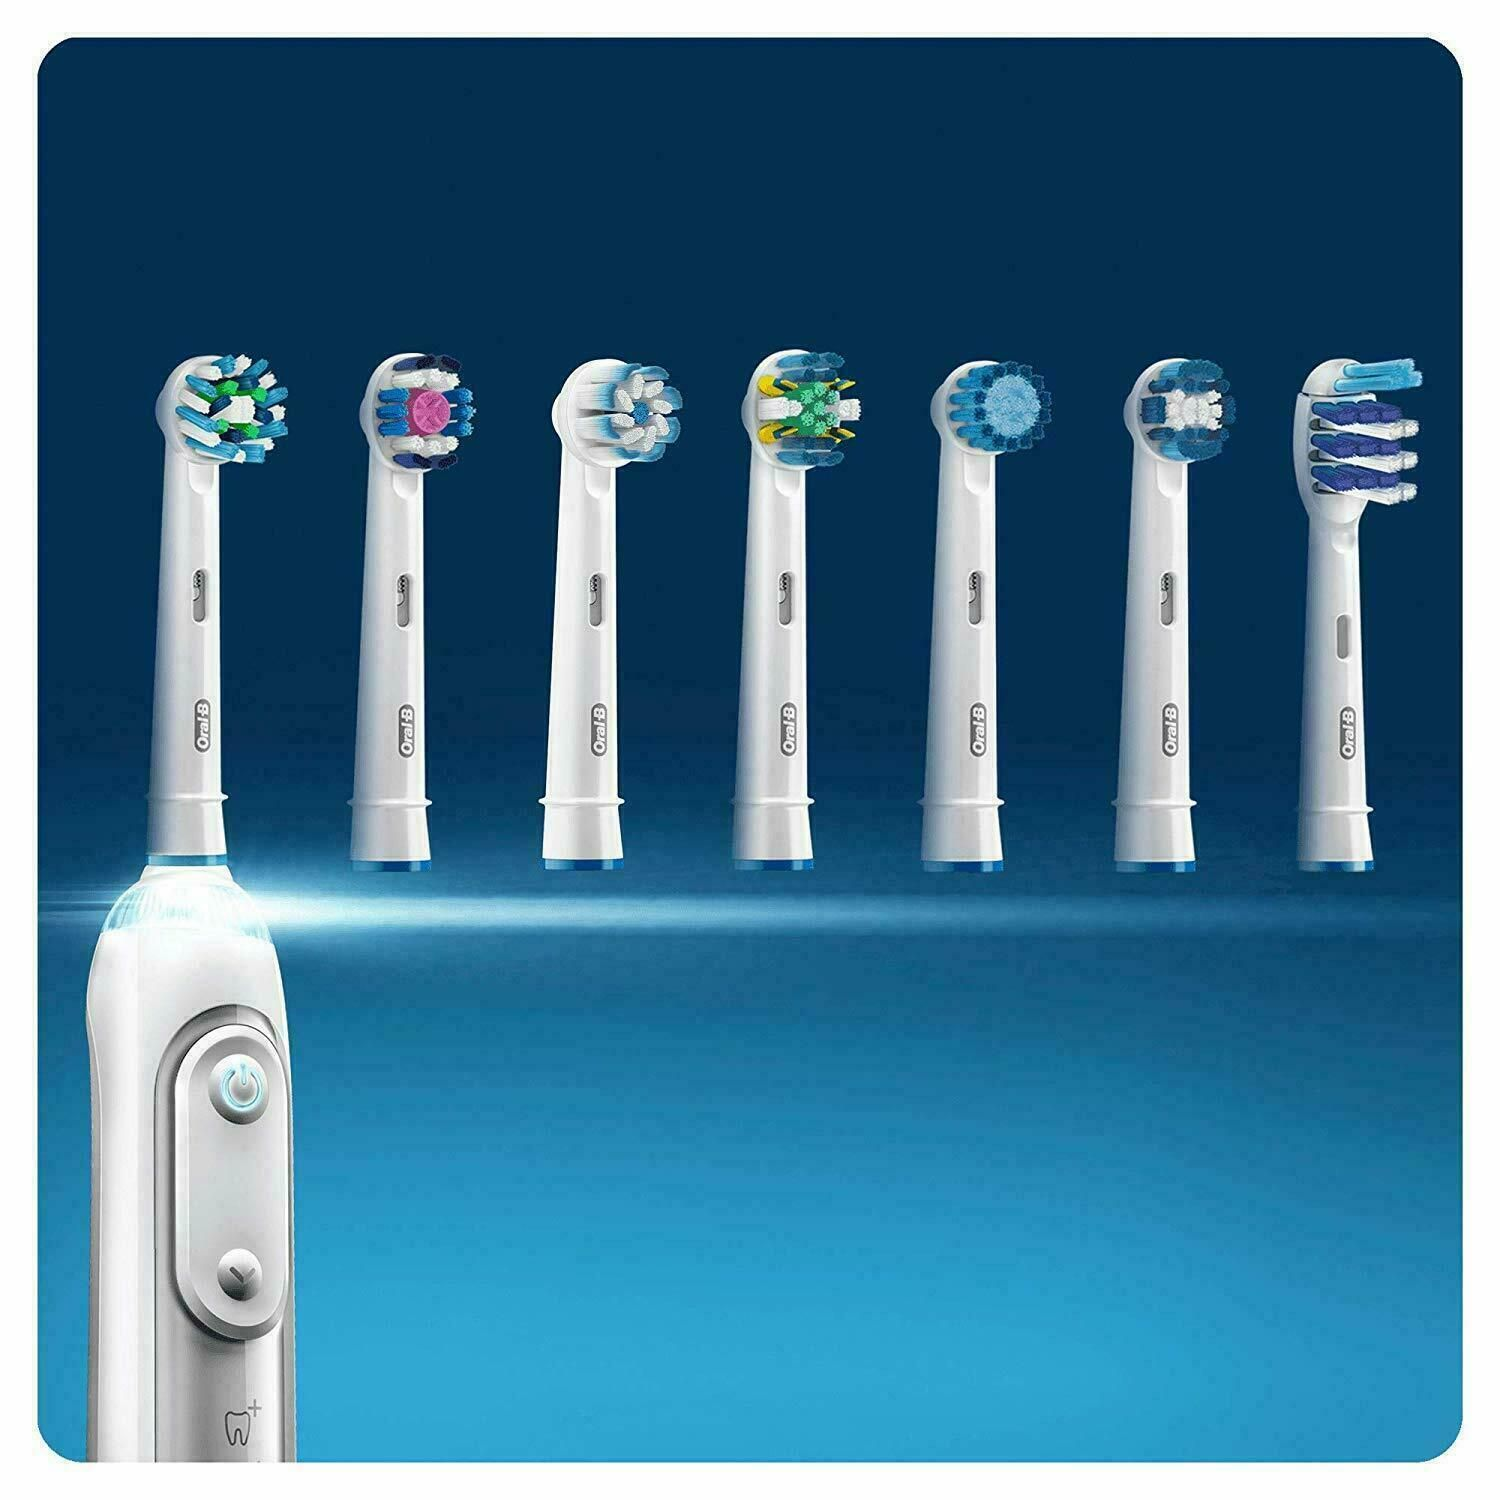 Oral-B Precision Clean Toothbrush Heads Replacement Refills 4 Pack